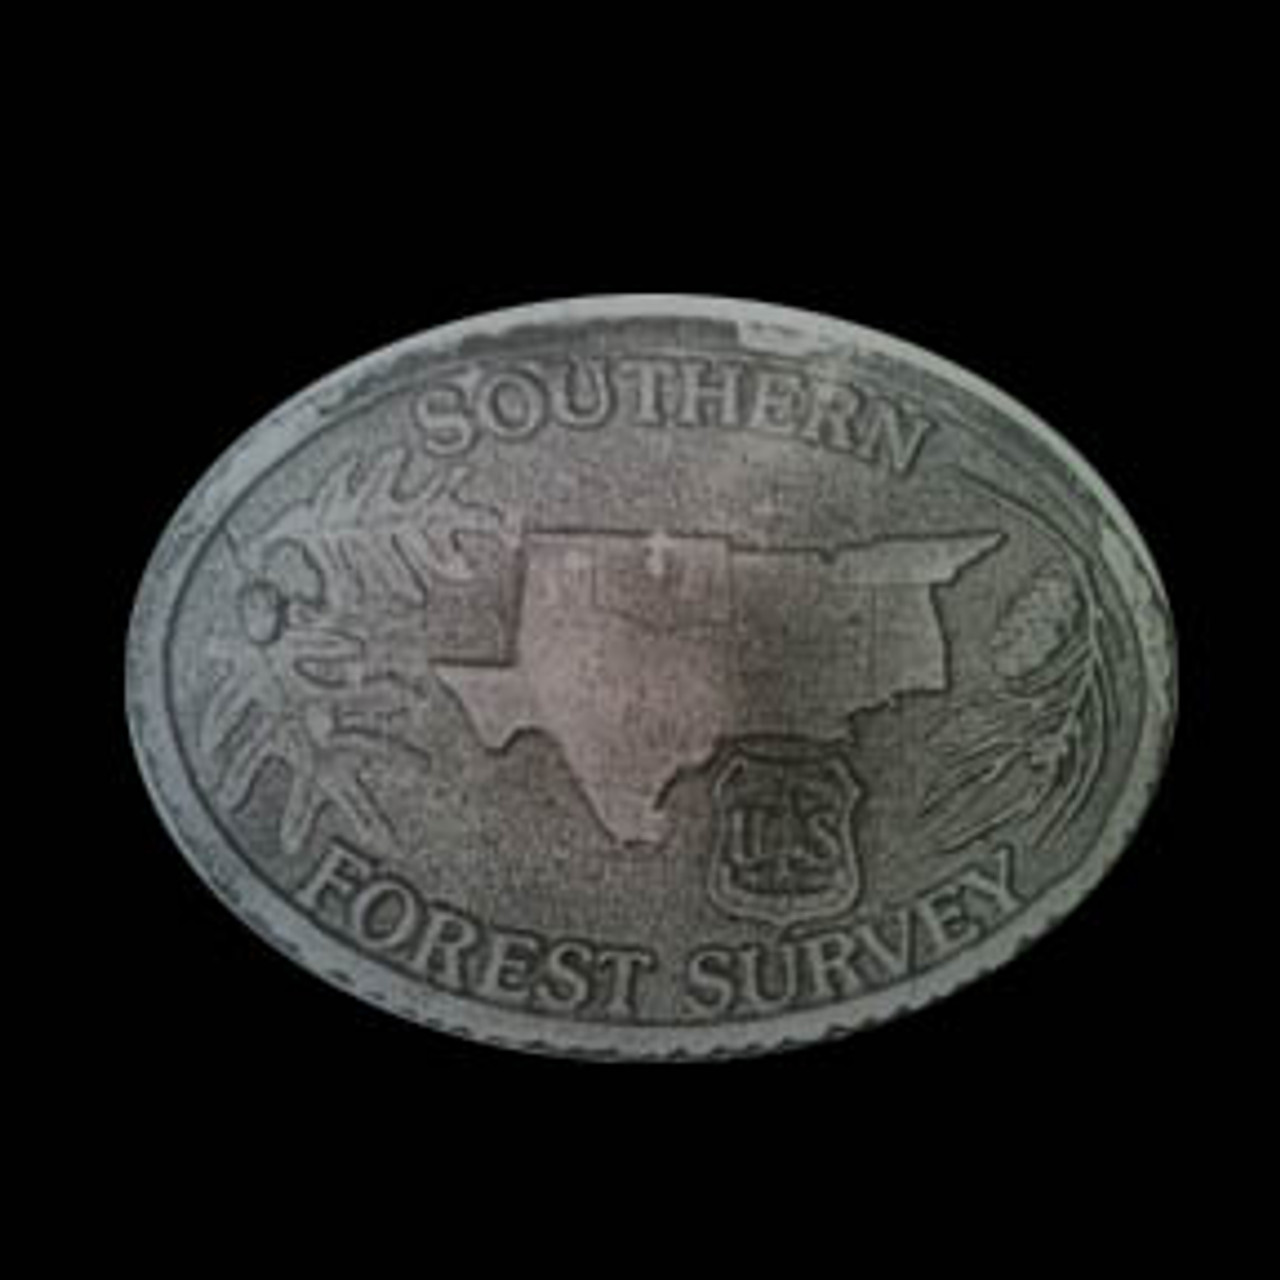 Region 8 Southern Forest Survey Buckle